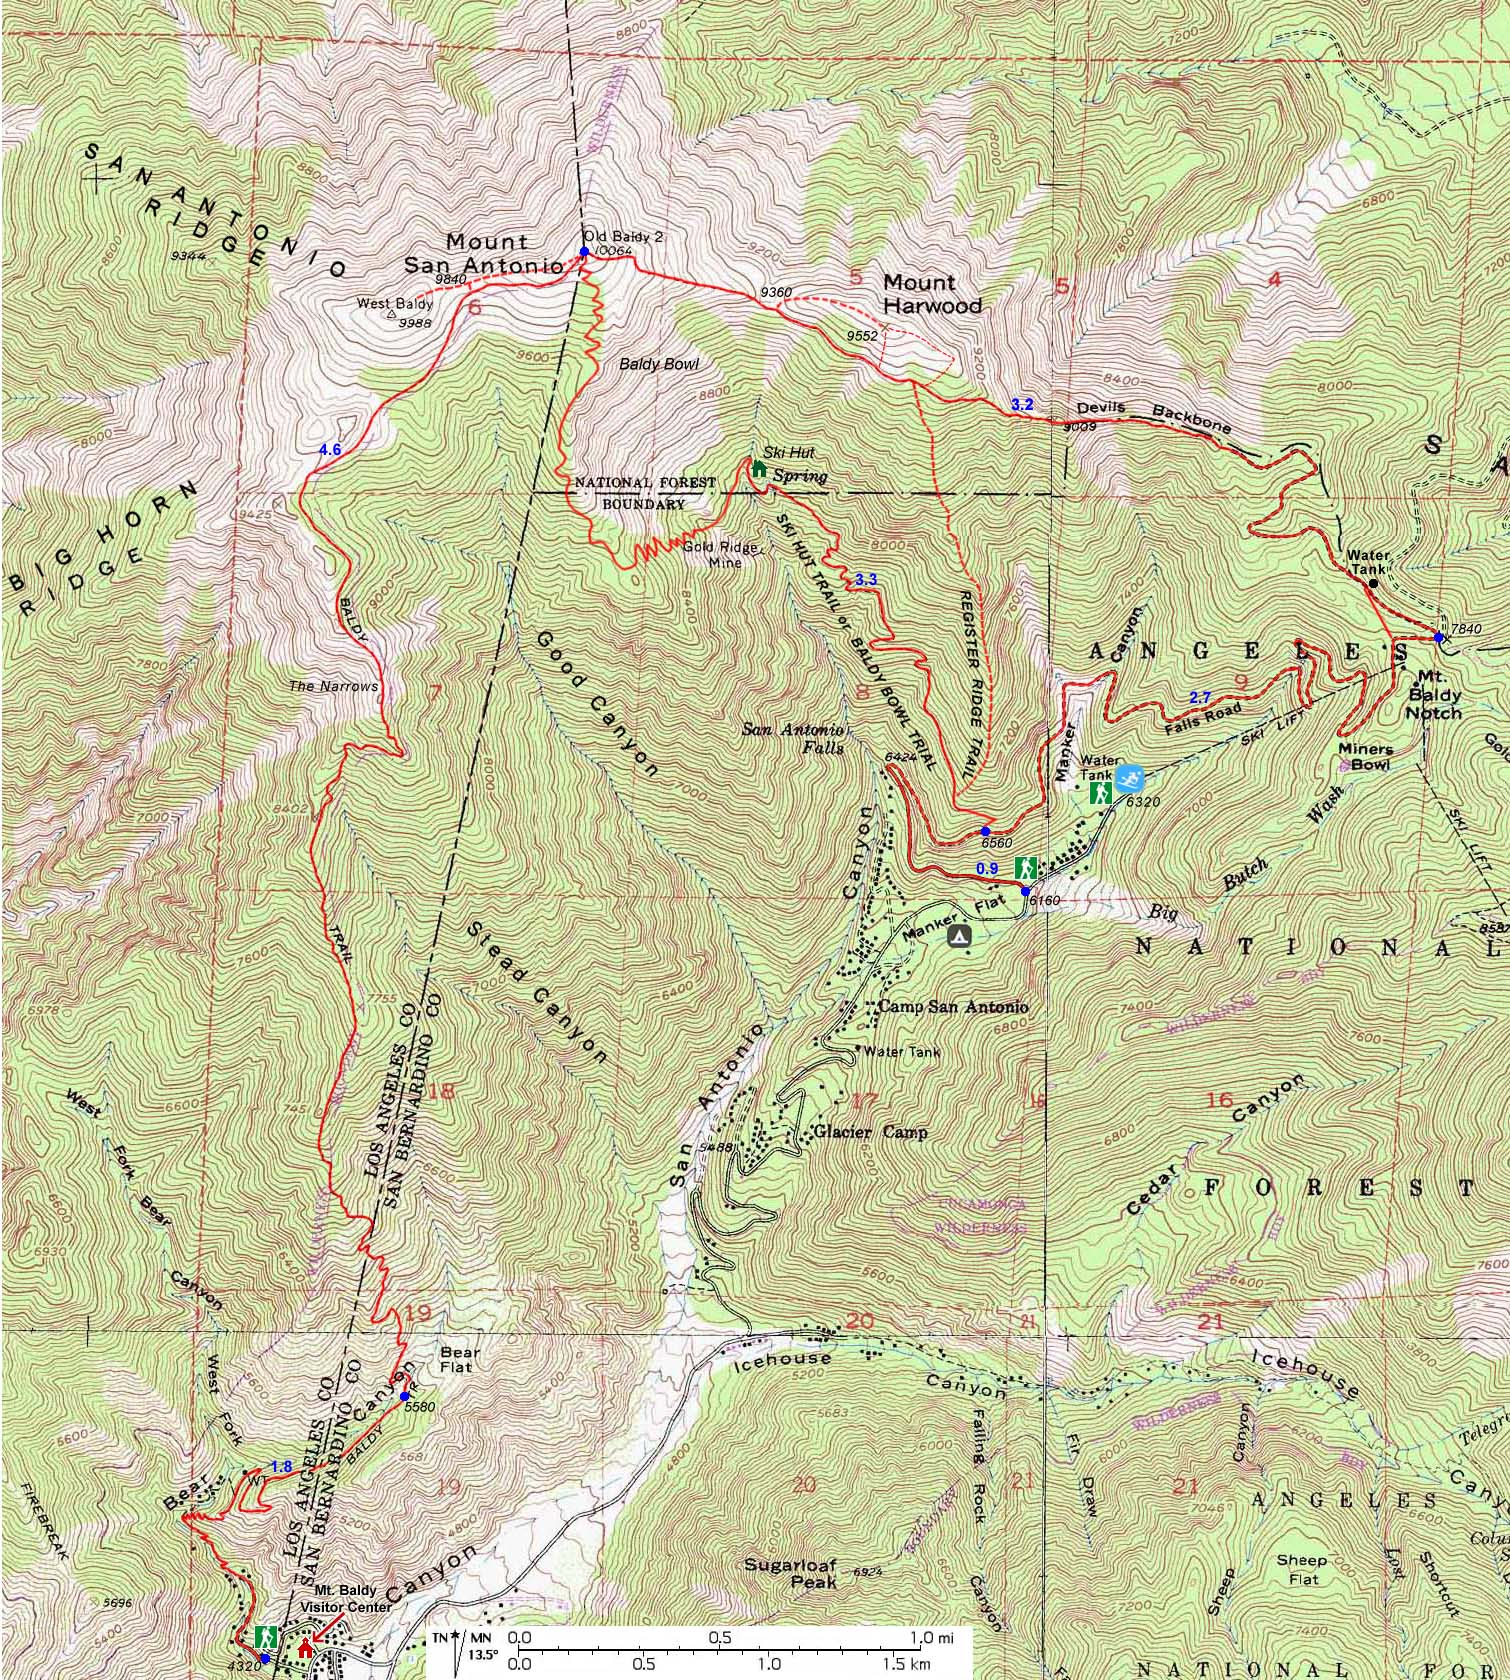 Dans Hiking Pages Ontario Peak - Where to get topo maps for hiking